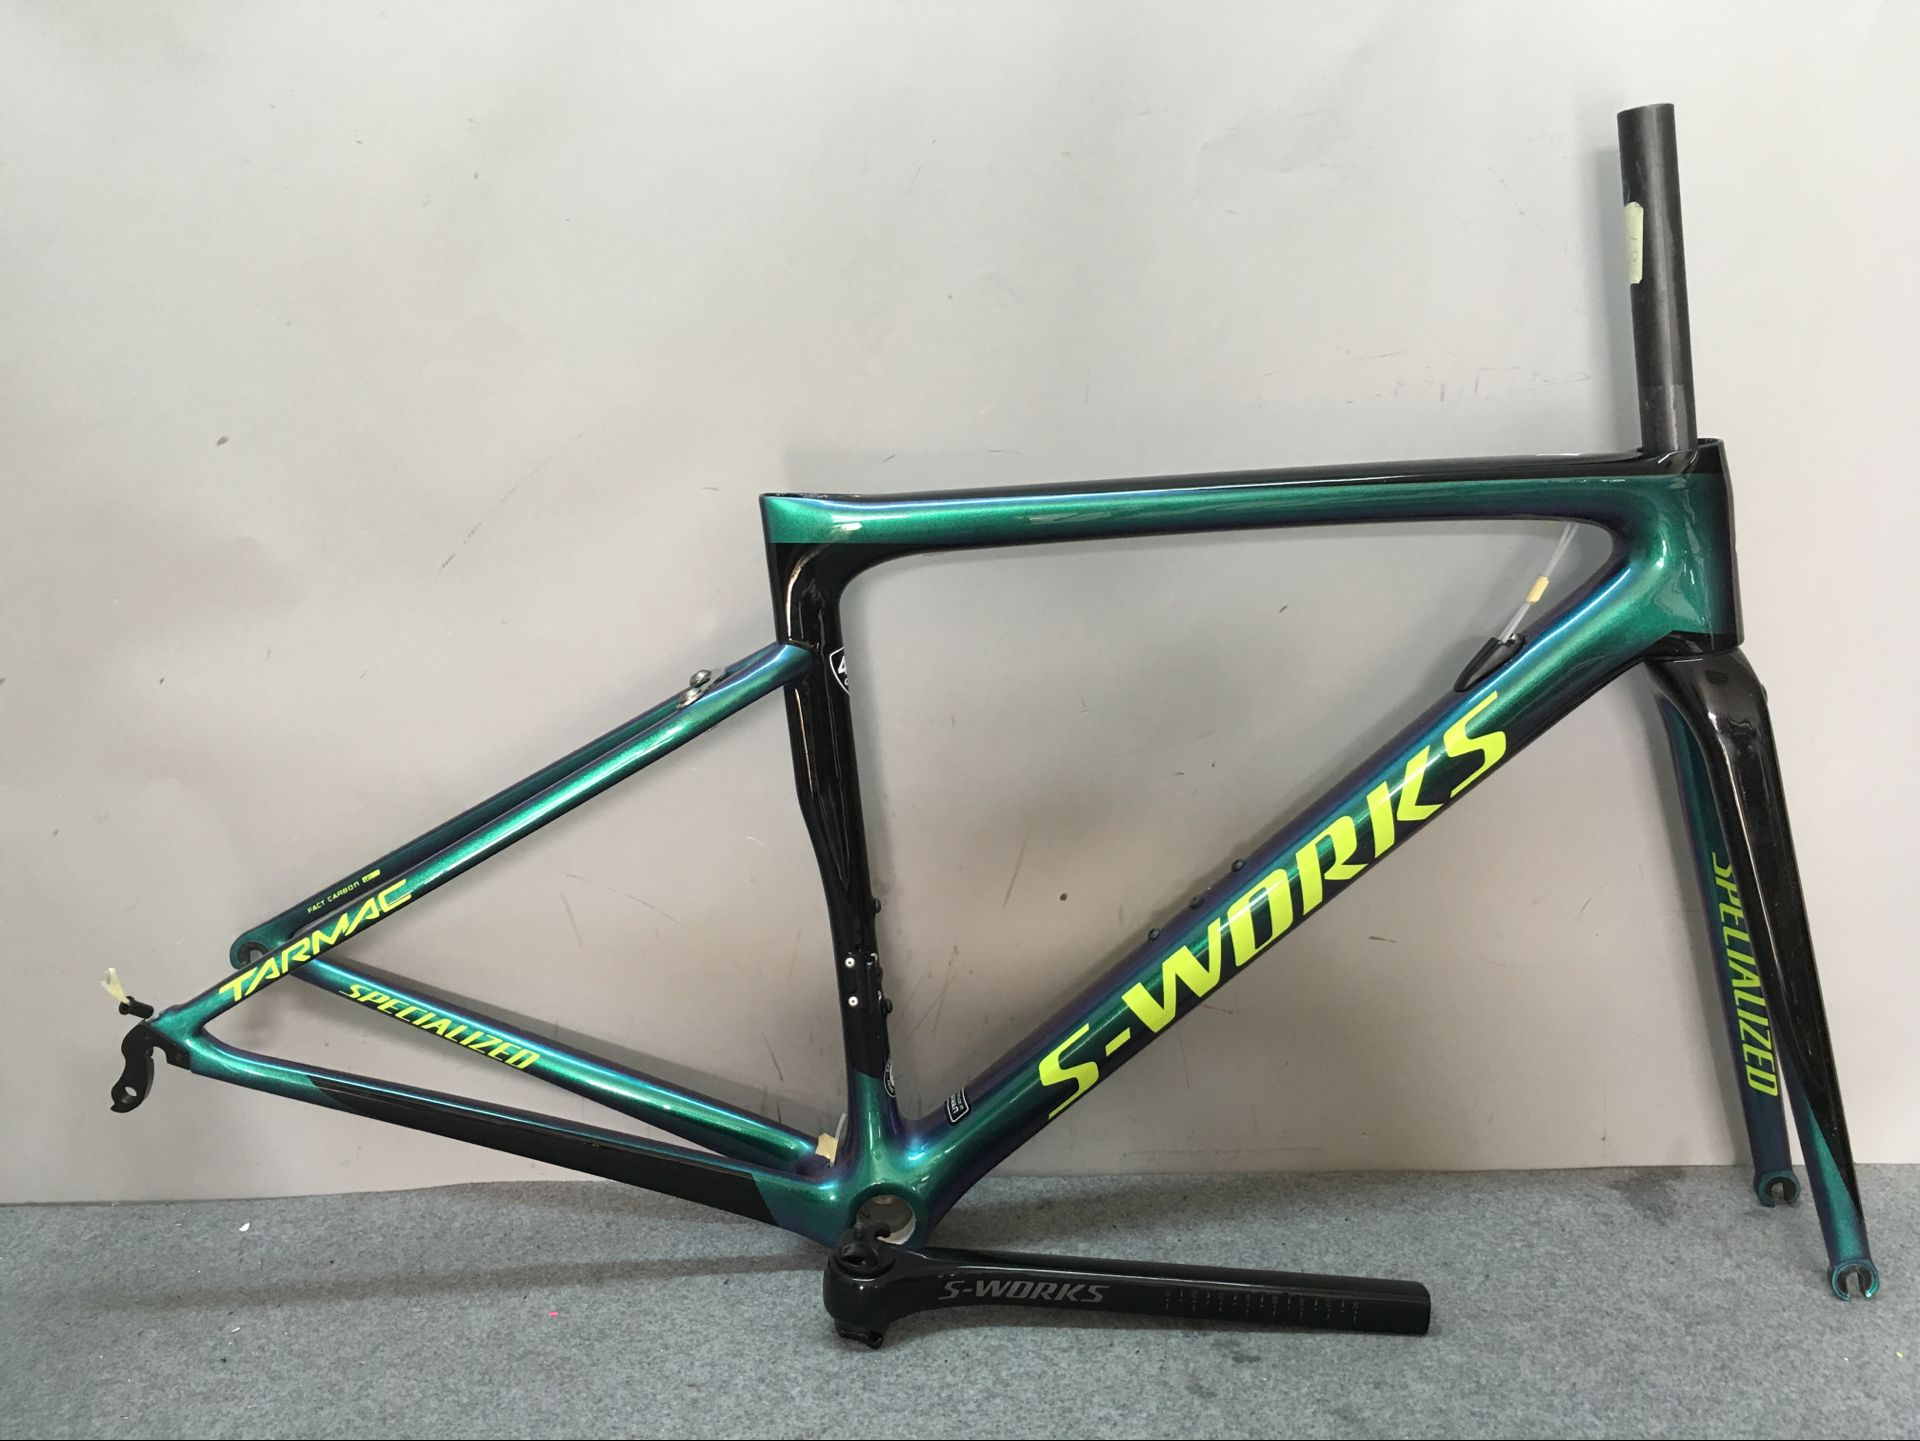 Carbon Fiber Road Bike >> Carbon Fiber Road Bike Bicycle Frame Sl6 Specialized